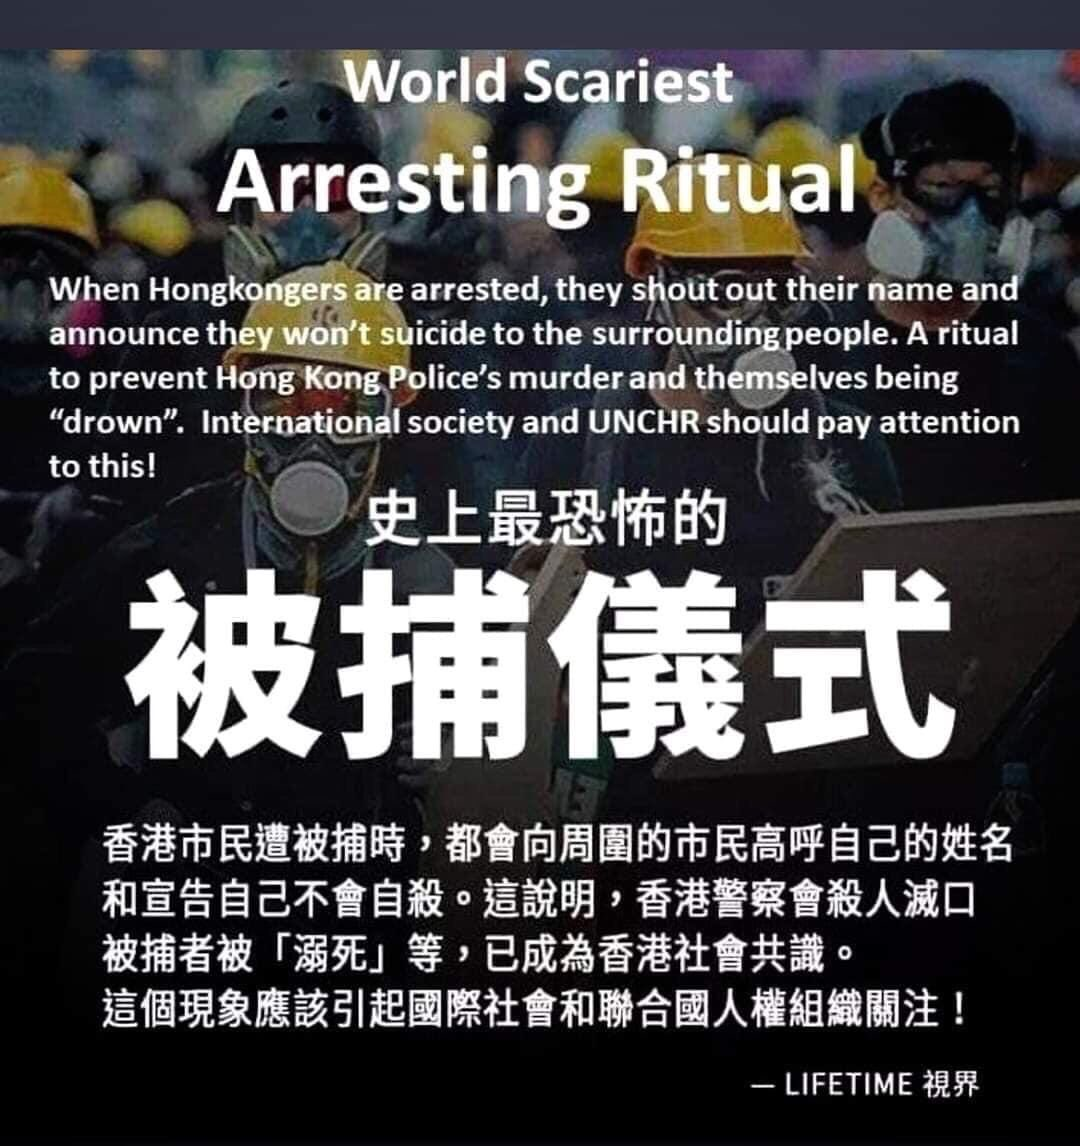 That's so true !  I guess there are no other places similar to Hong Kong now, the protestor/ citizen would shout out their name during be arrested because we afraid we will be disappeared someday without reason.  This is serious humanitarian issues! #SOSHK  #HongKongProtest <br>http://pic.twitter.com/bYxlTn2Cv5